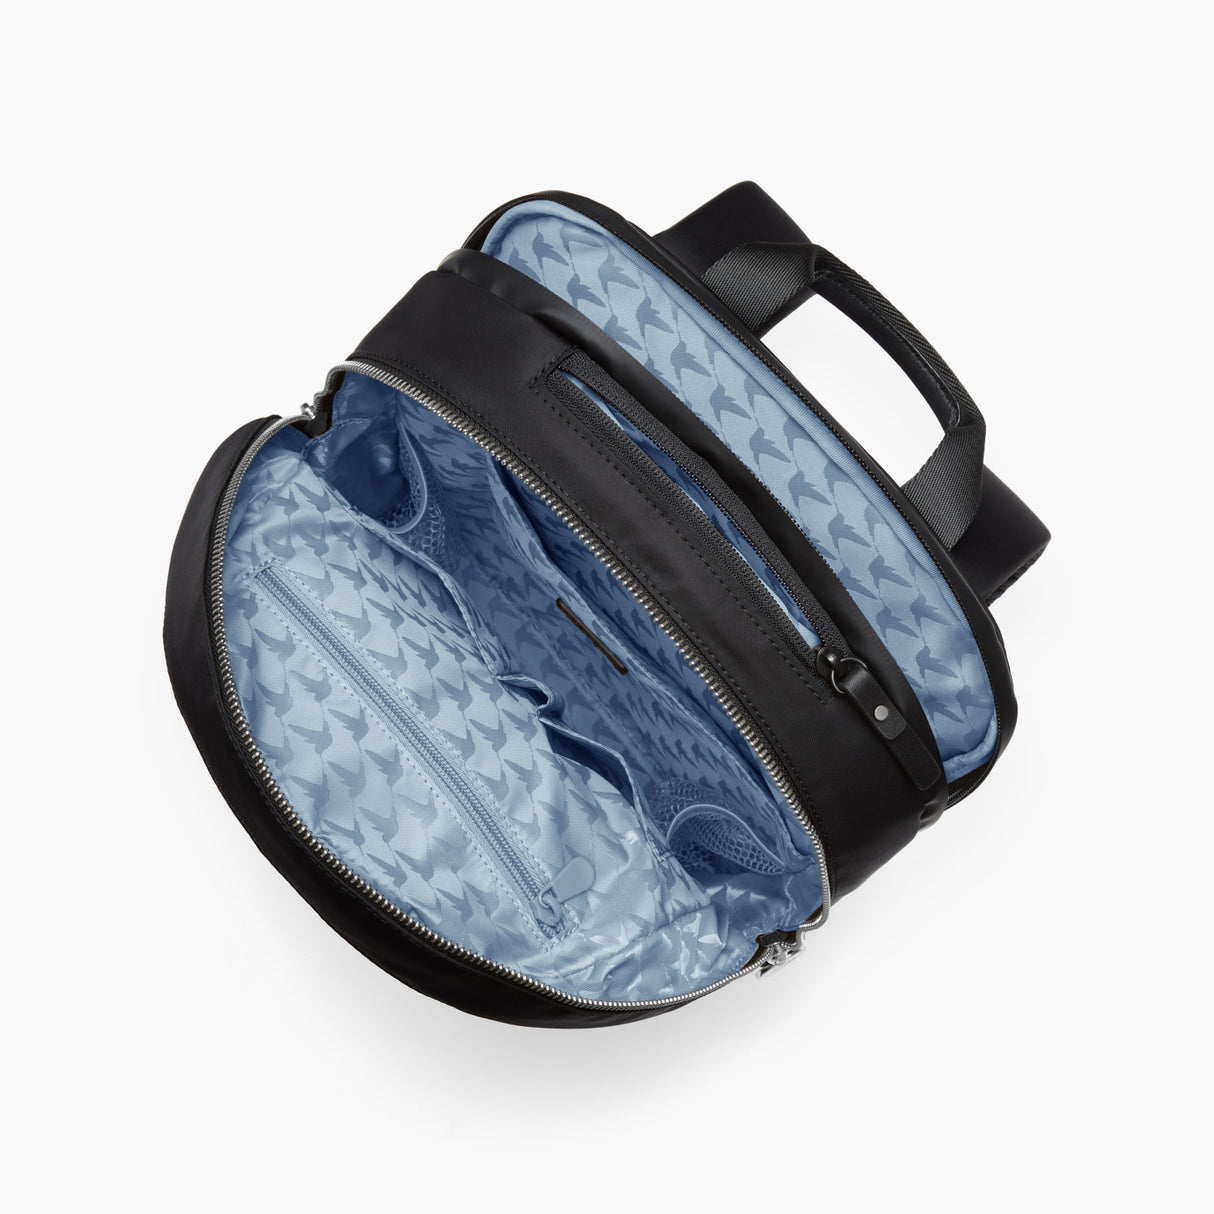 Interior Empty Top View - Beacon - Nylon - Black / Silver / Azure - Backpack - Lo & Sons